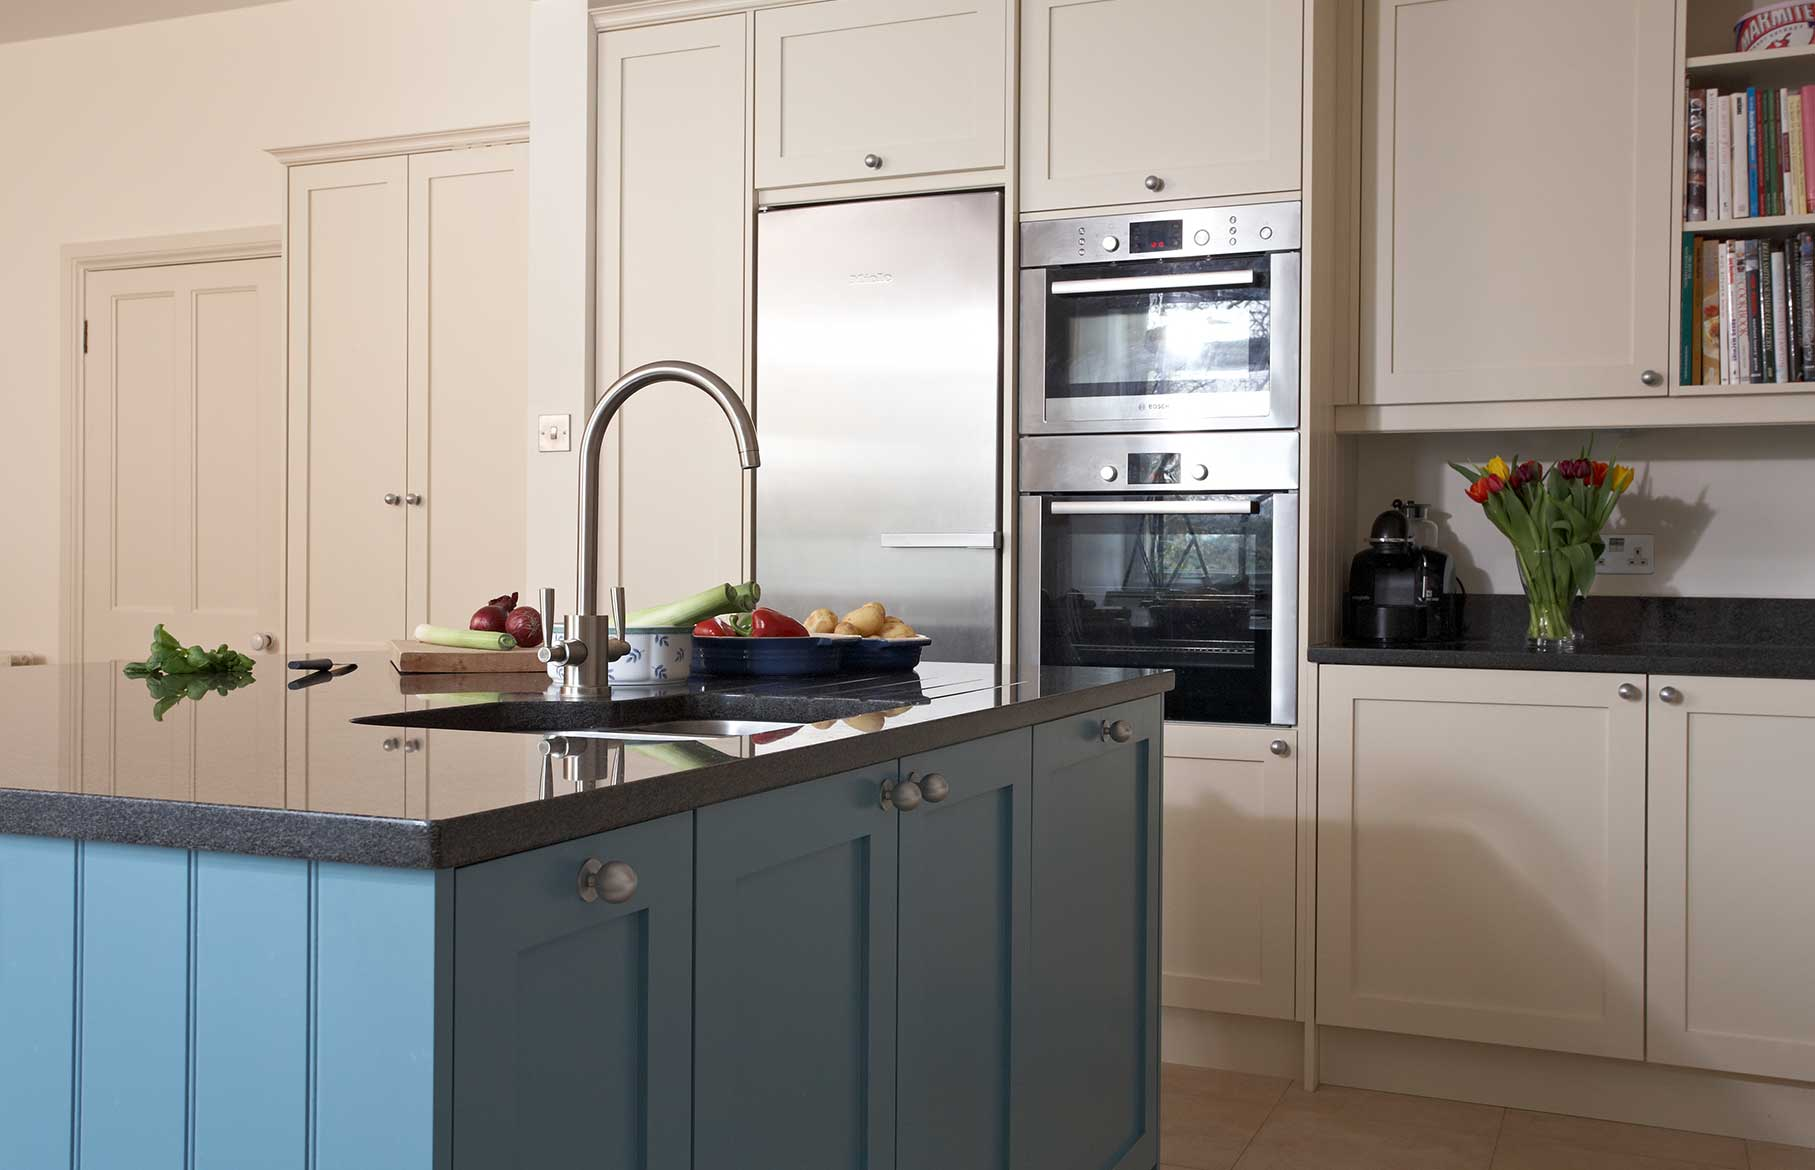 Family kitchen designed by bath kitchen company Kitchen design companies in the uk